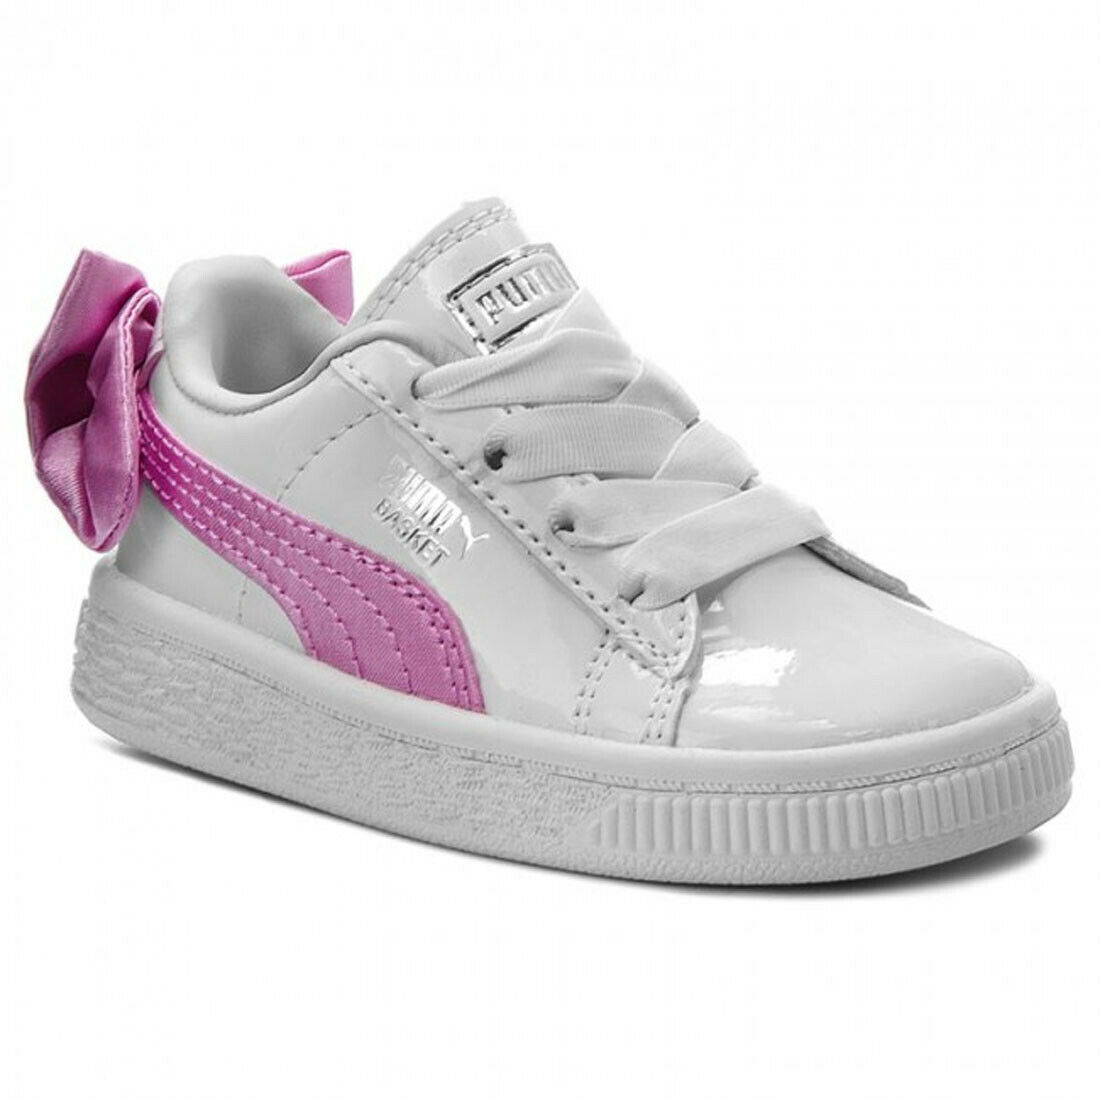 PUMA Basket Bow Patent Infants Trainers Ribbon White Pink Childrens Girls Shoes